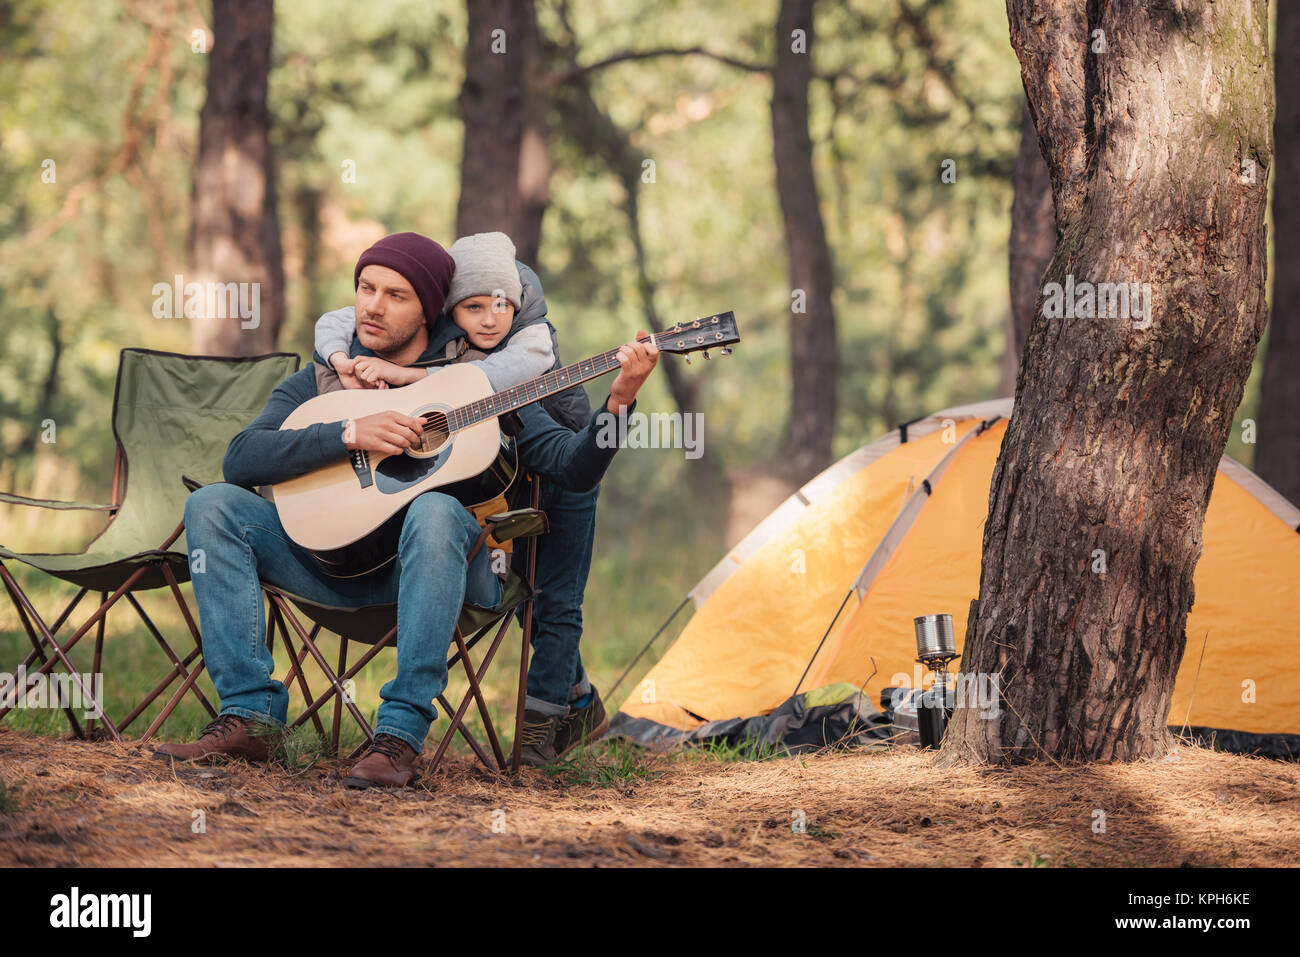 father and son with guitar in forest - Stock Image